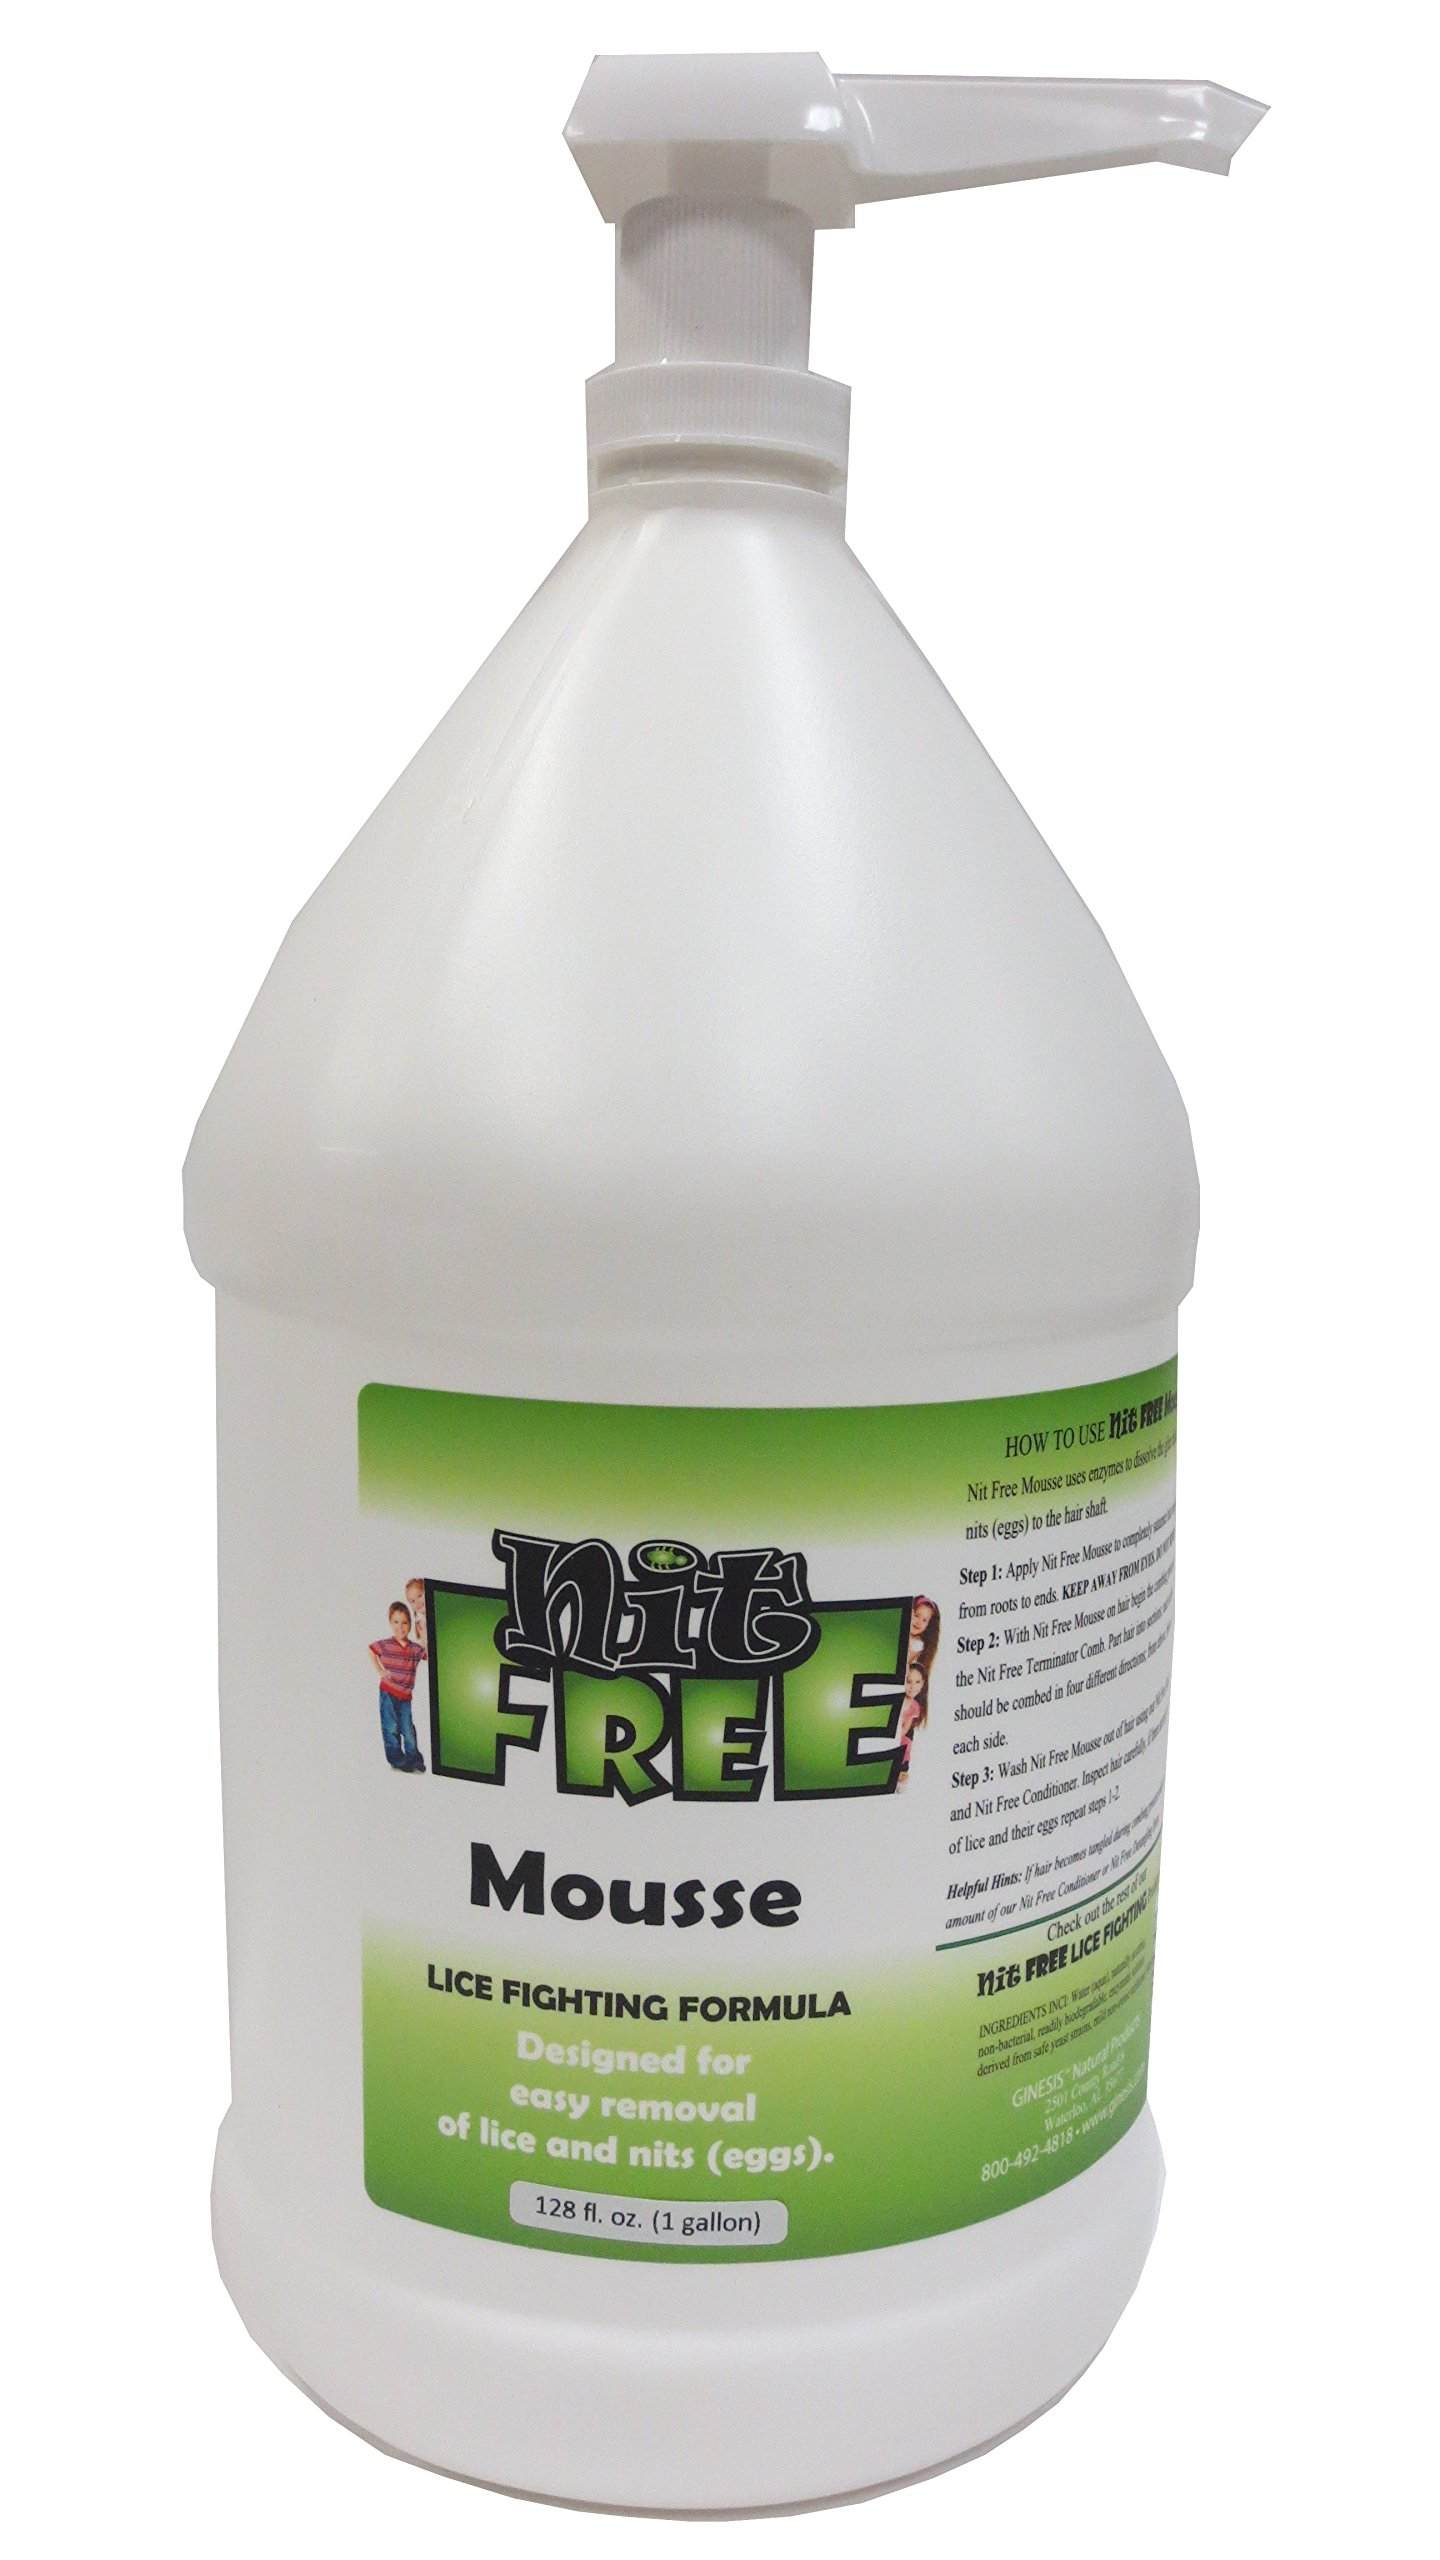 Nit Free Lice and Nit(egg) Eliminating Enzyme Nit Glue Dissolver. Pre comb out Enzyme Treatment for Removing Head lice, and their Eggs. Nit Free 2 in 1 Makes Combing Efficent. 1 Treatment and Done.128 FL OZ